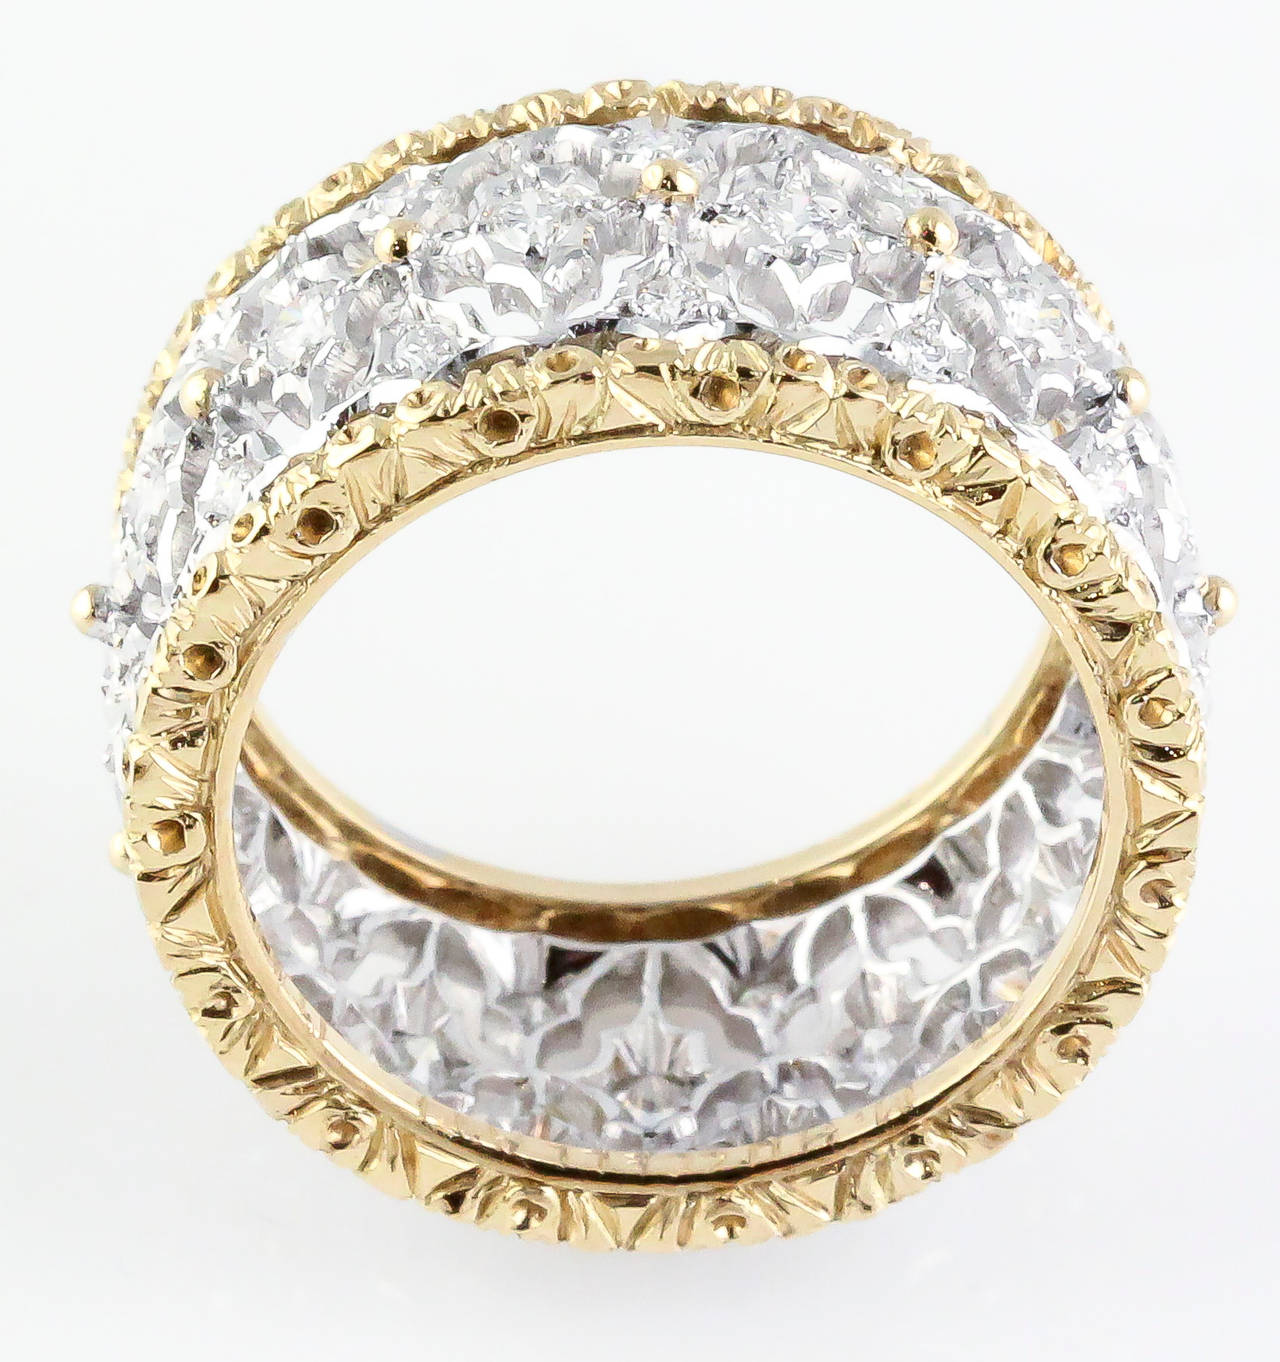 M. Buccellati Diamond Gold Band Ring In Excellent Condition For Sale In New York, NY